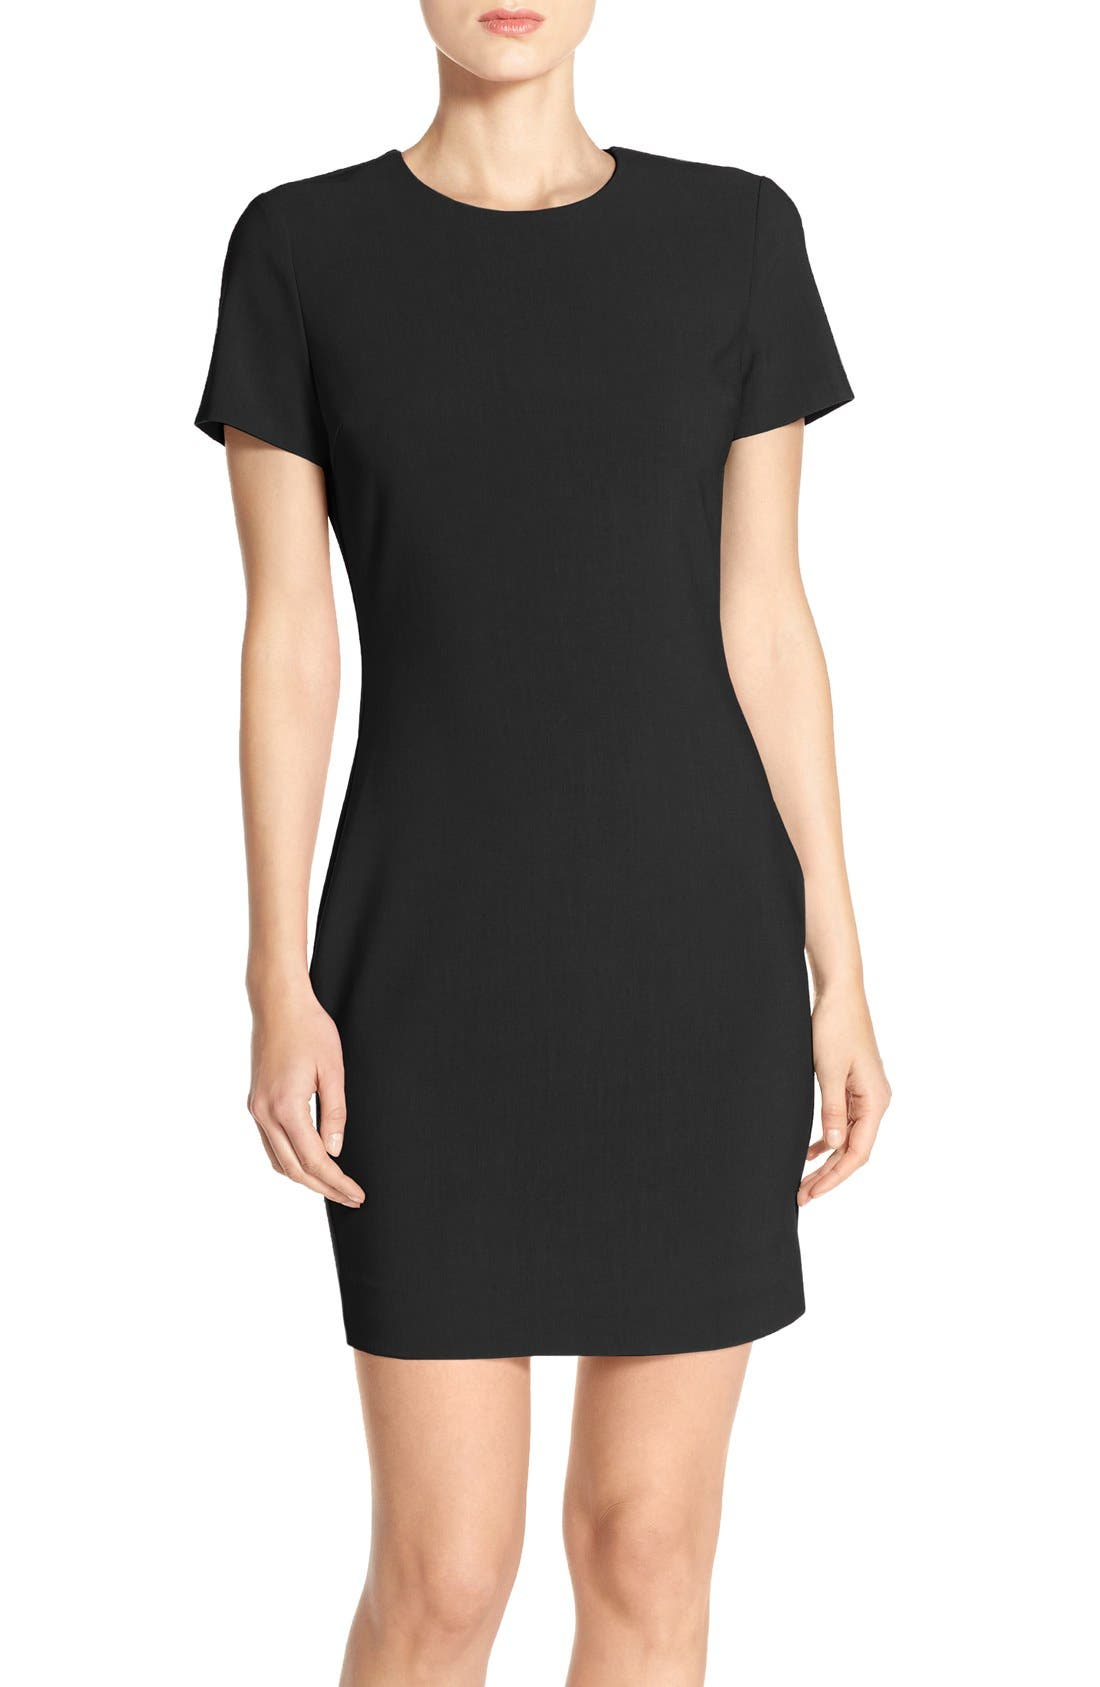 LIKELY 'Manhattan' Short Sleeve Sheath Dress